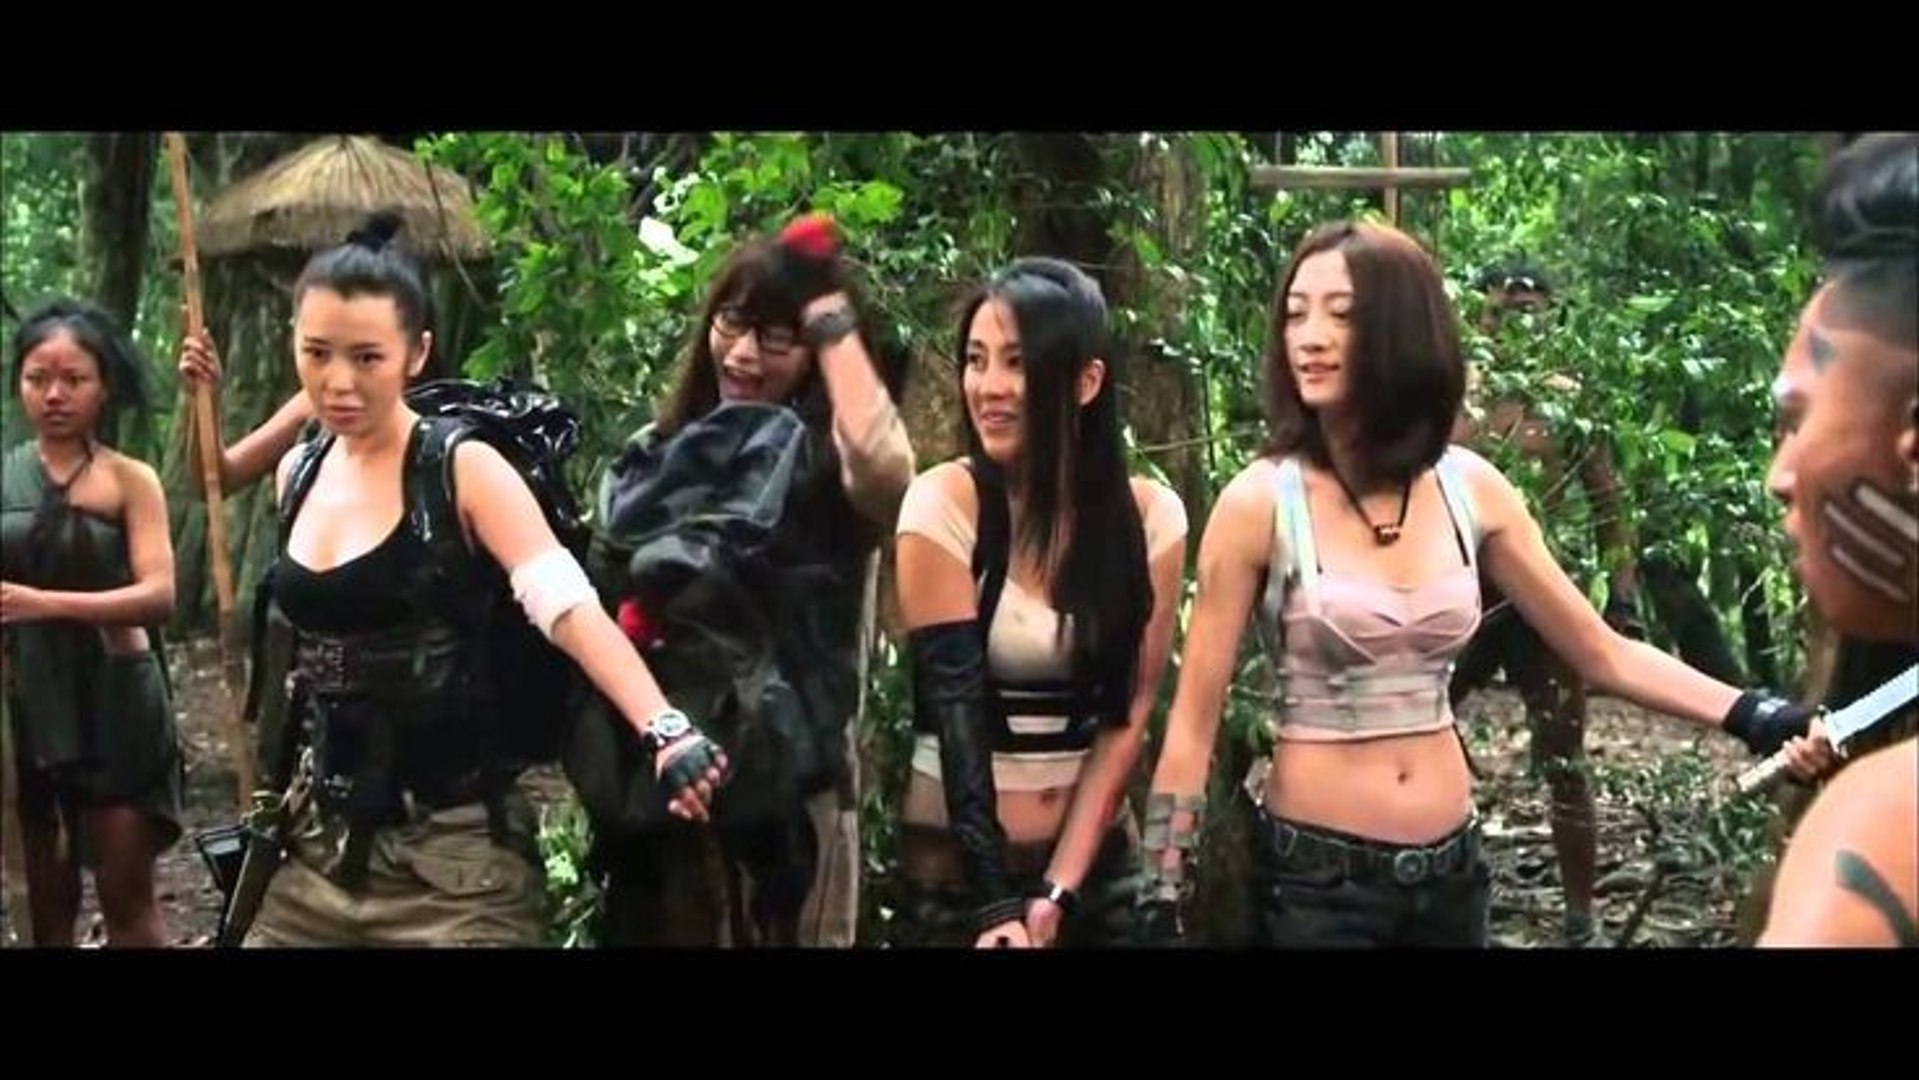 Best Action Movies 2016 - ANGEL WARRIORS 2016 - Hollywood Full Movies 2016